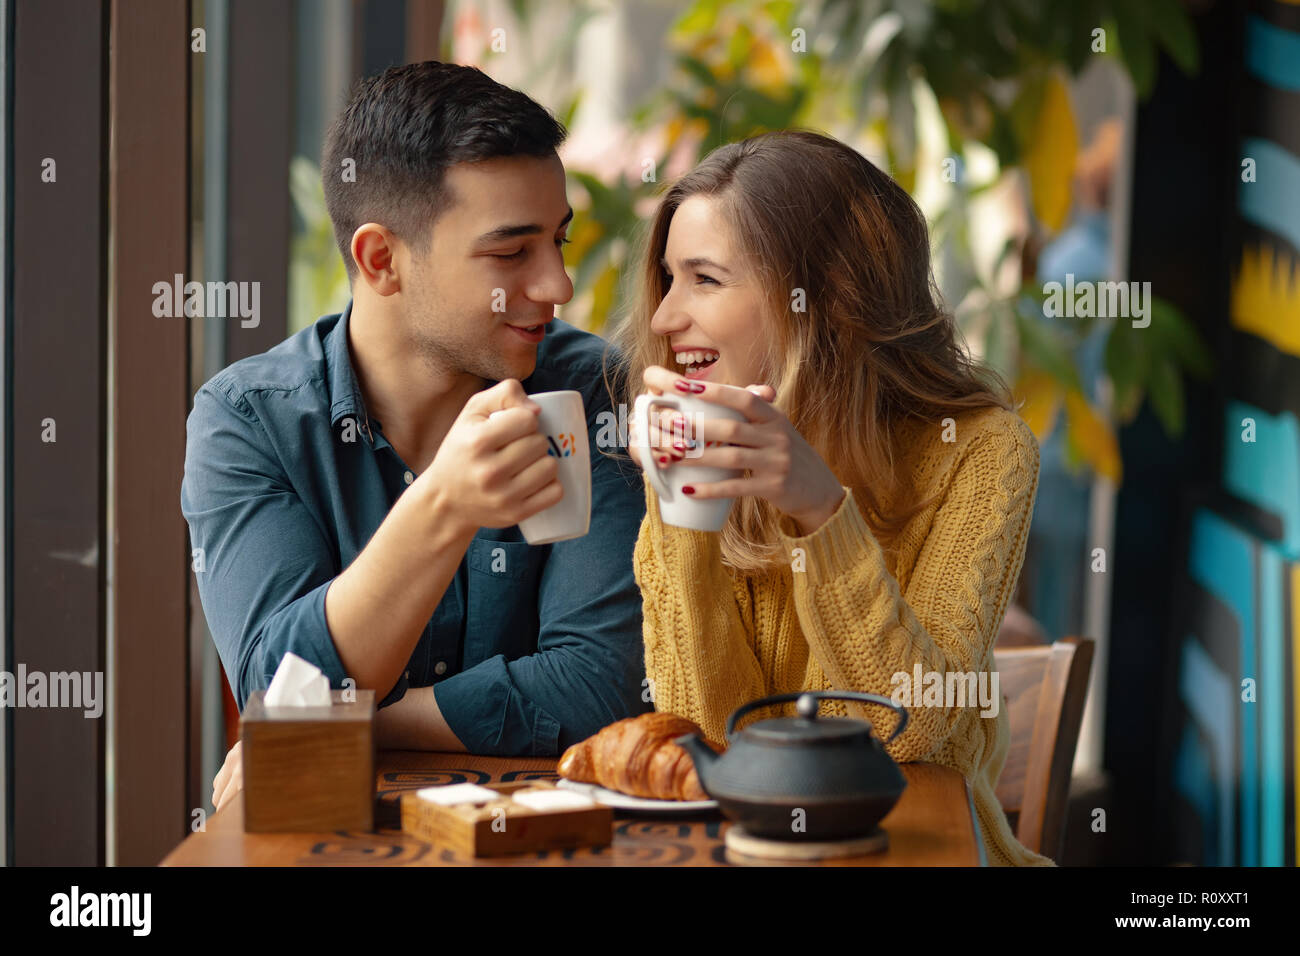 Young attractive couple on date in coffee shop having a conversation and enjoying the time spent with each other. Stock Photo